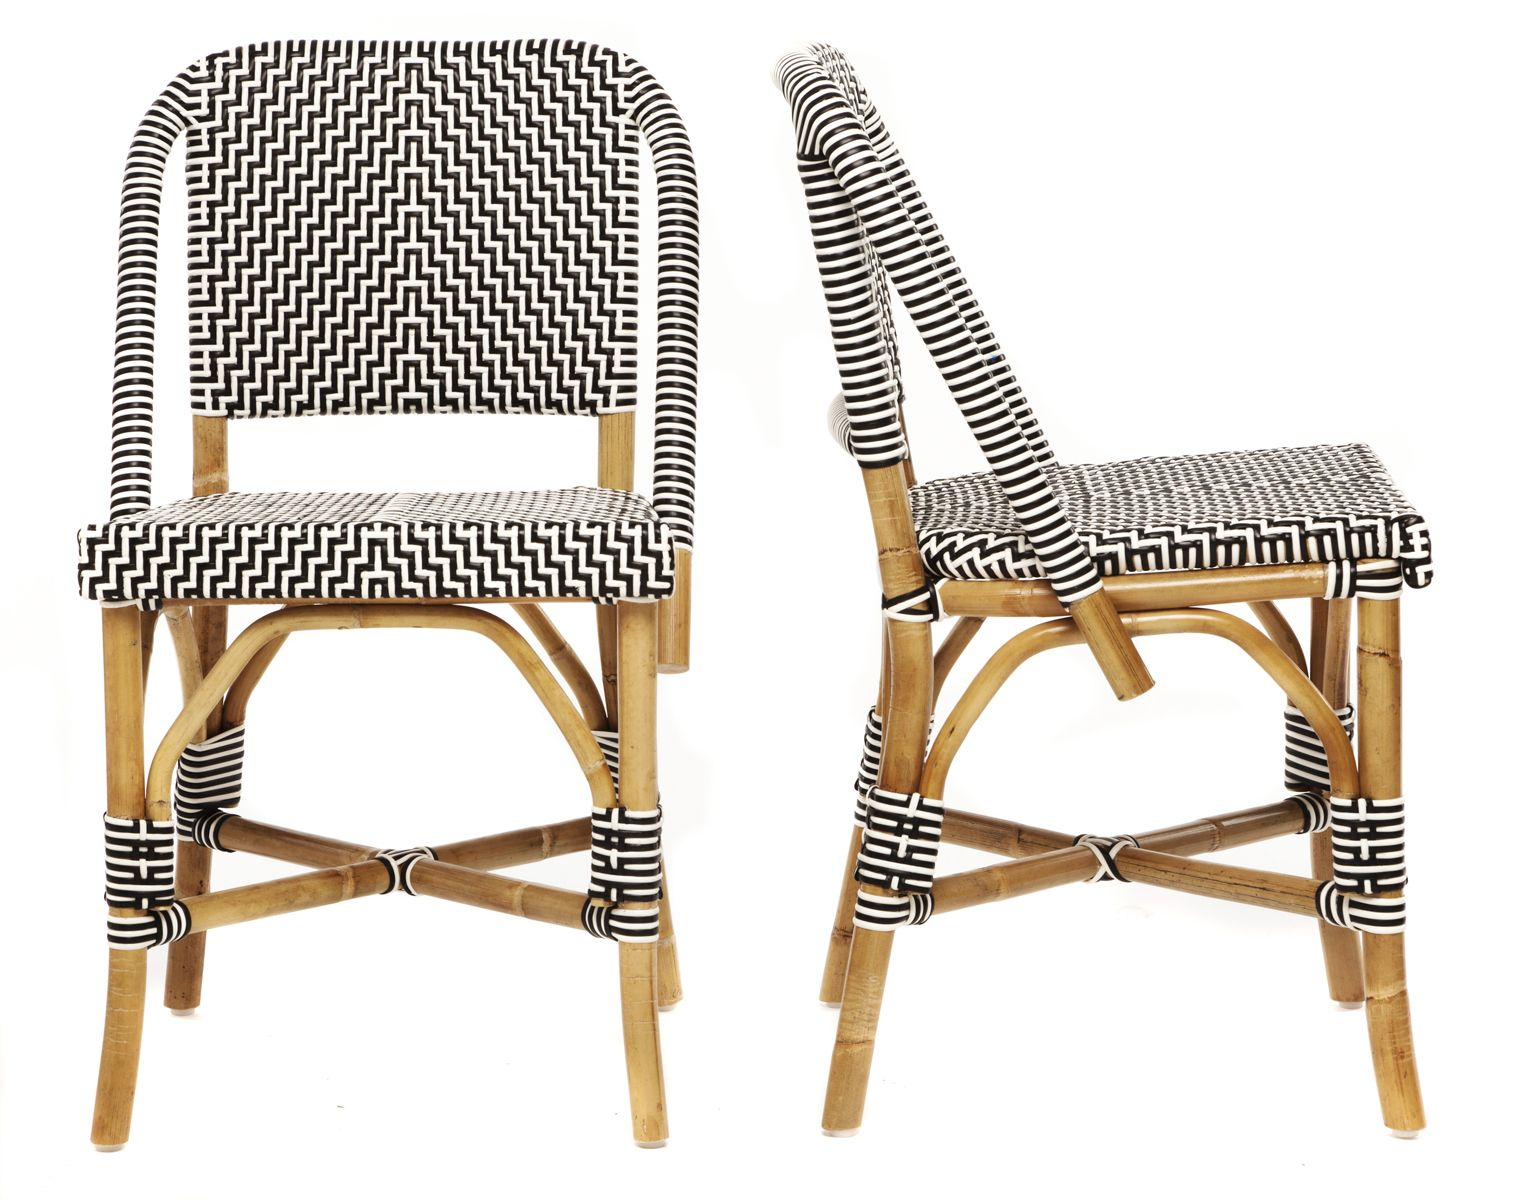 Bistro L afrique Black And White Pattern Bistro Chairs A Modern Approach  With A French Flair For Dining Can Be Used Outdoors. Bistro L afrique 32 H Black And White Pattern Bistro Chairs A